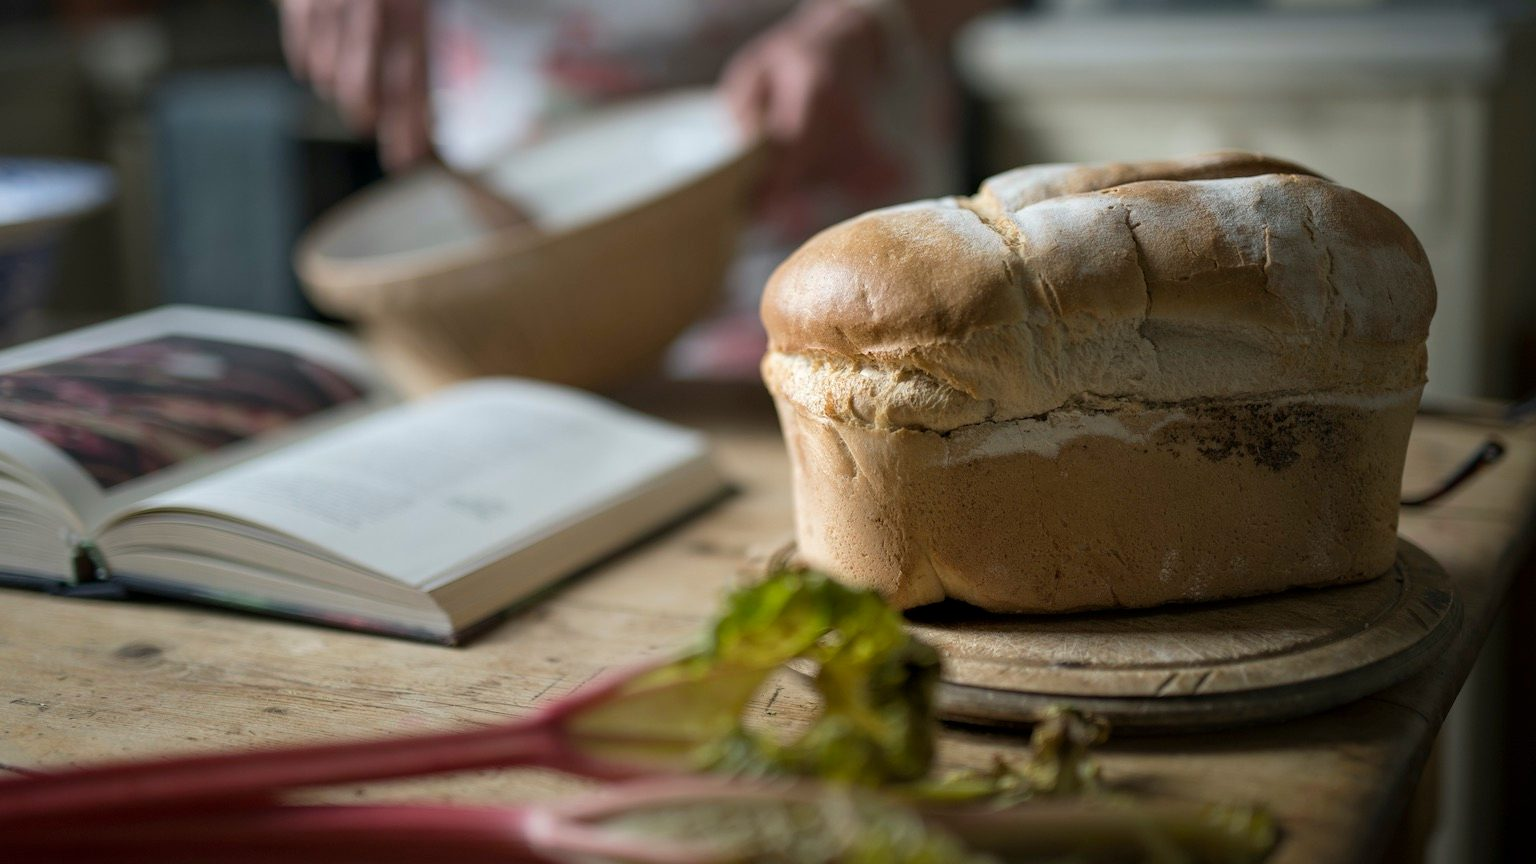 a fresh homemade loaf of bread in a rustic kitchen with a person cooking in the background.